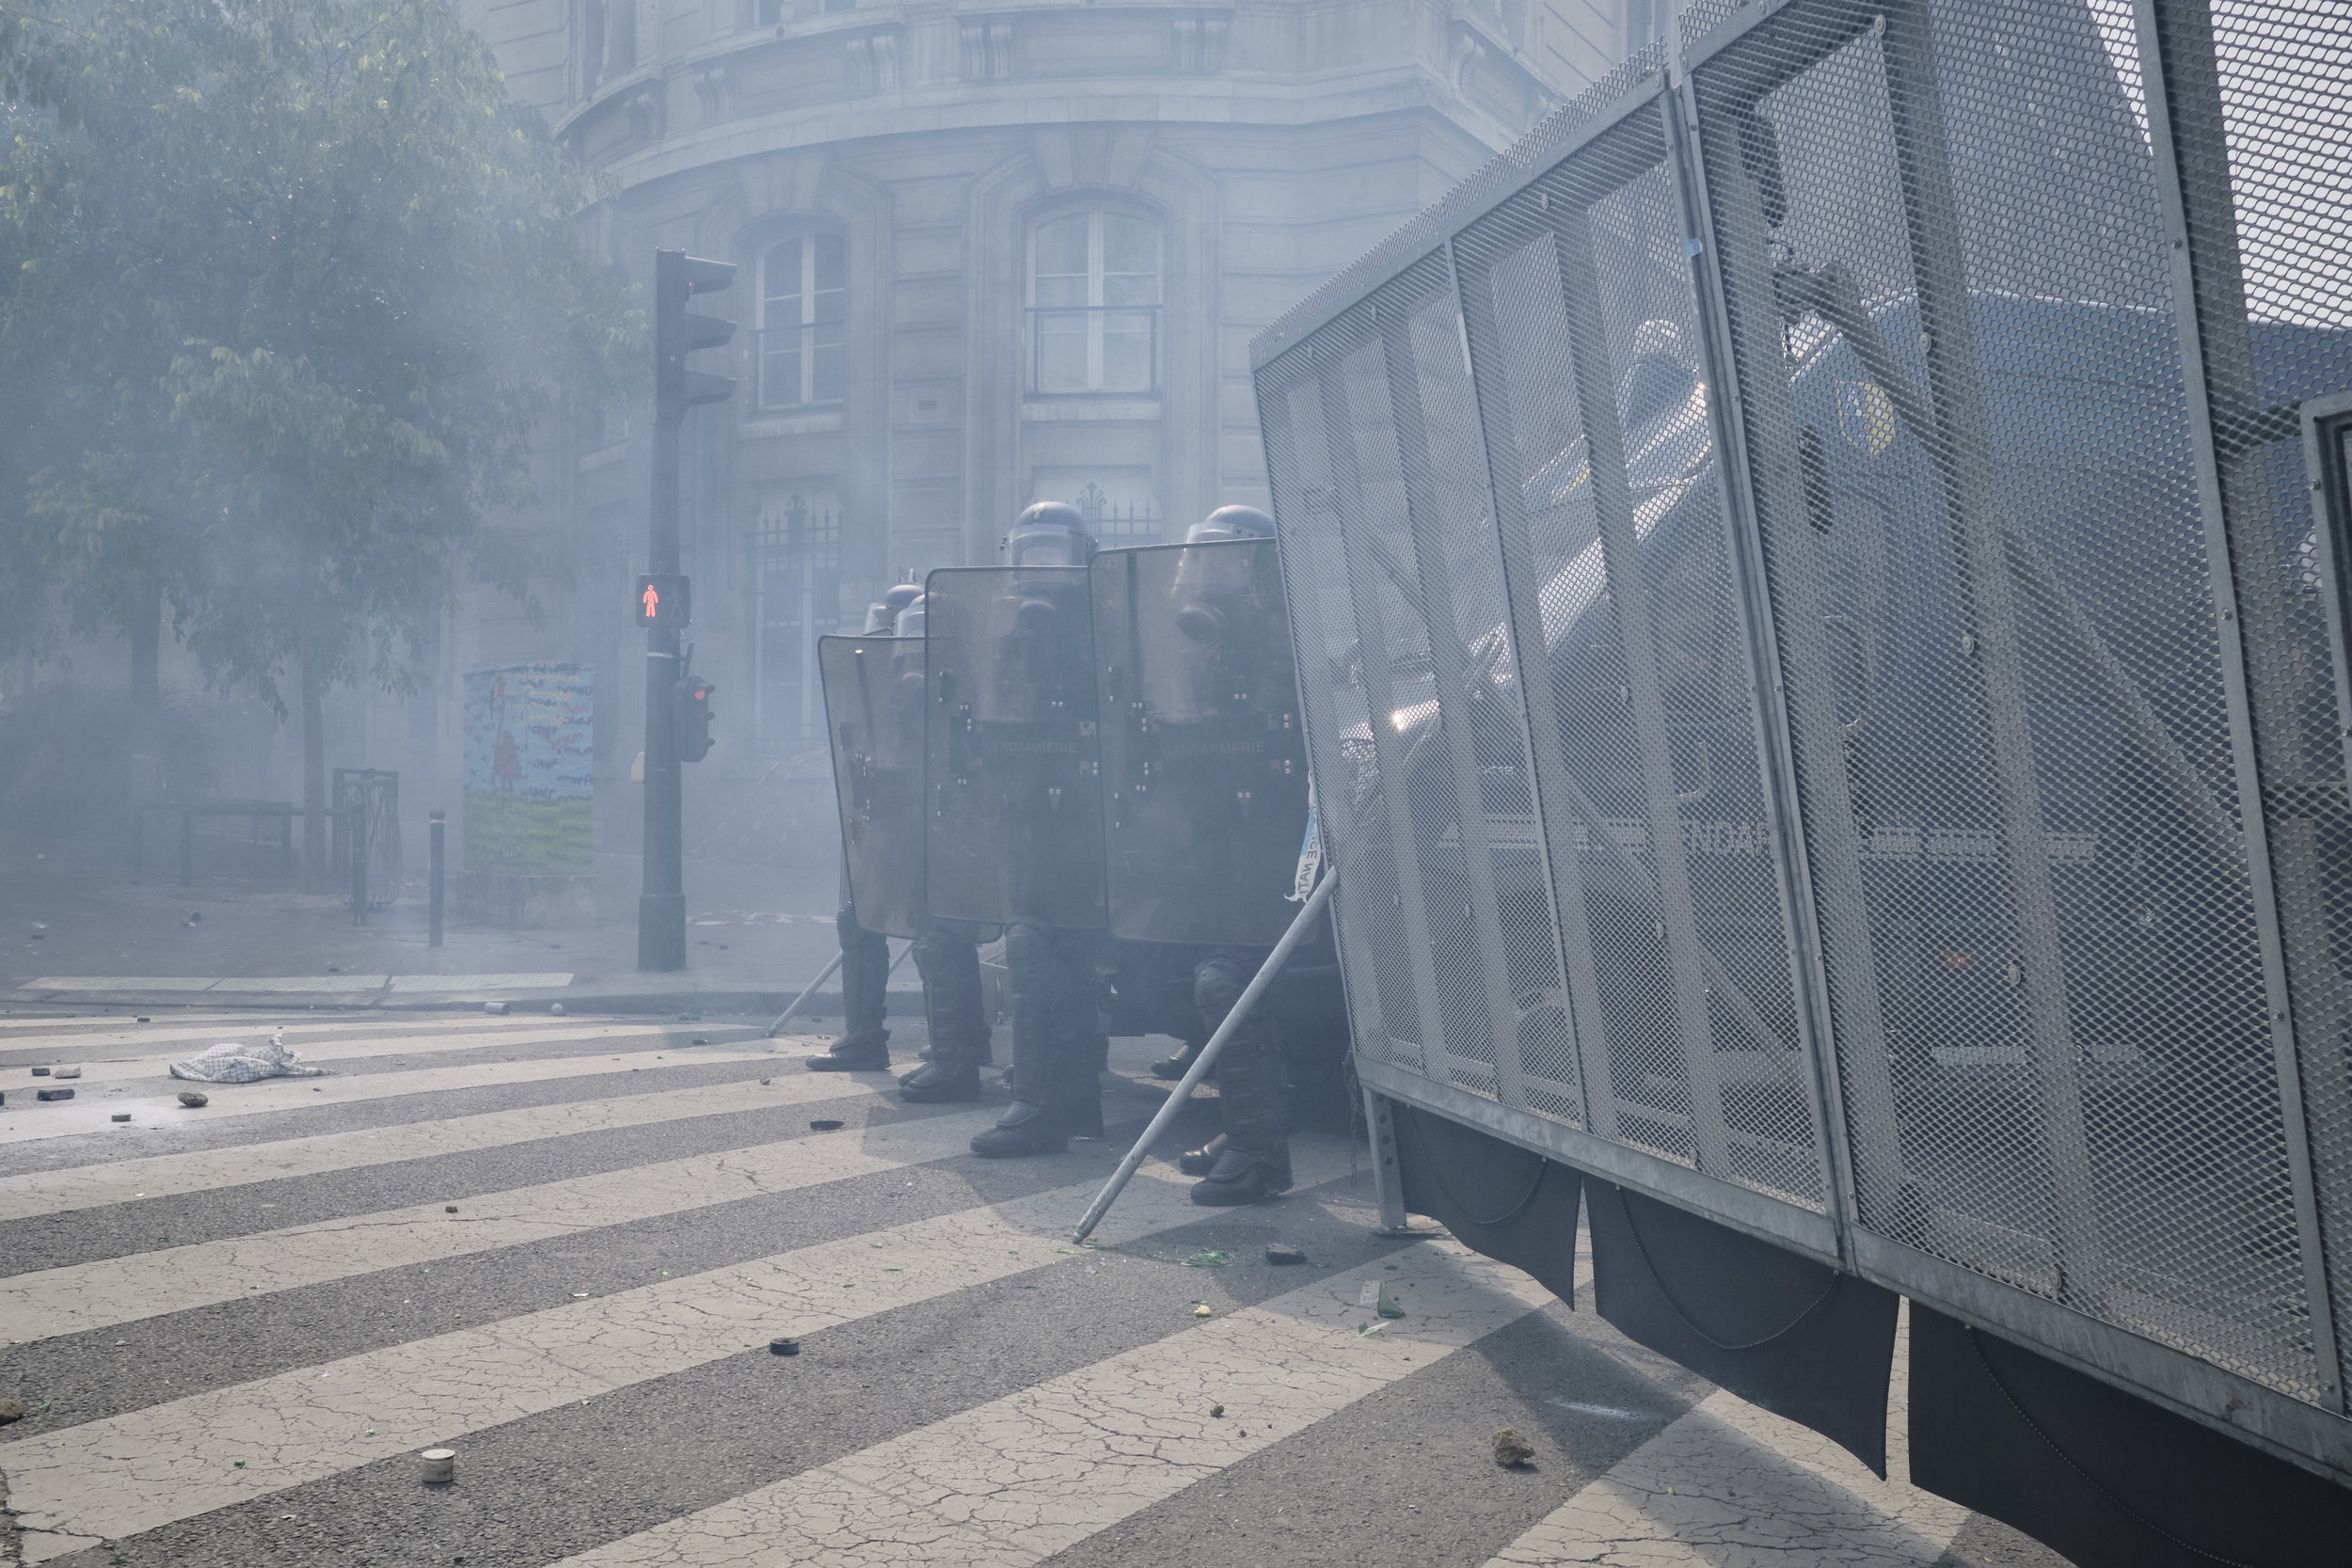 Police trying to divert the protest route towards The Place D'italie. Tear gas is still in the air after an attempt to control the crowd.